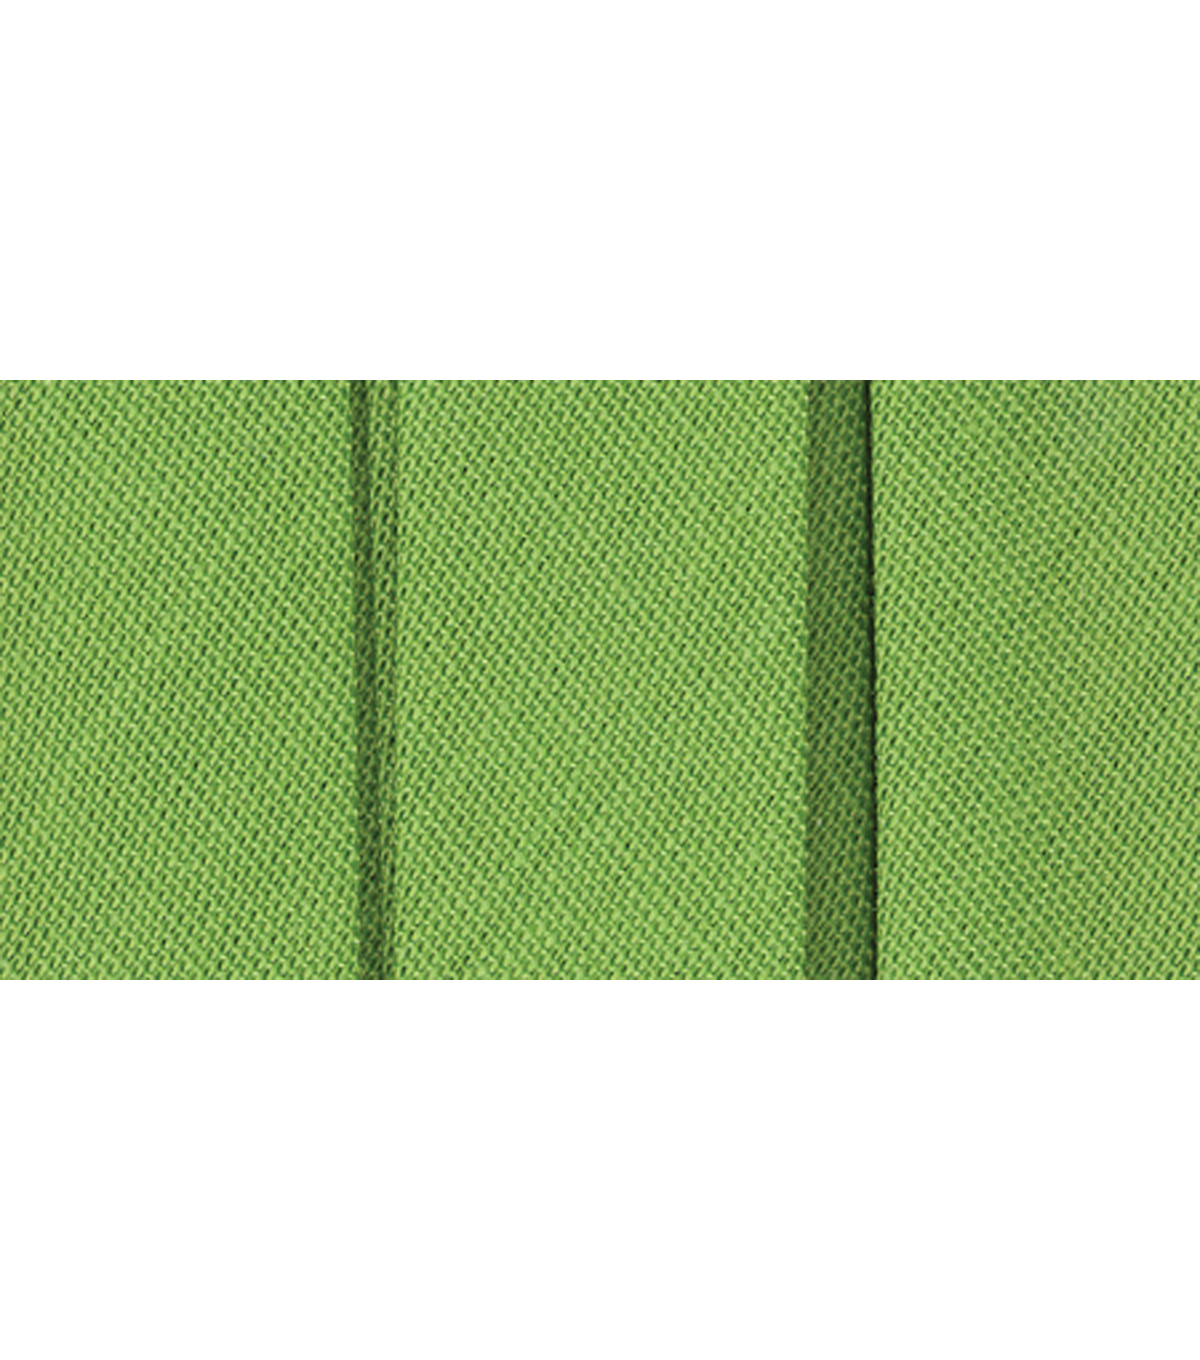 Wrights Extra Wide Double Fold Bias Tape, Green Glow